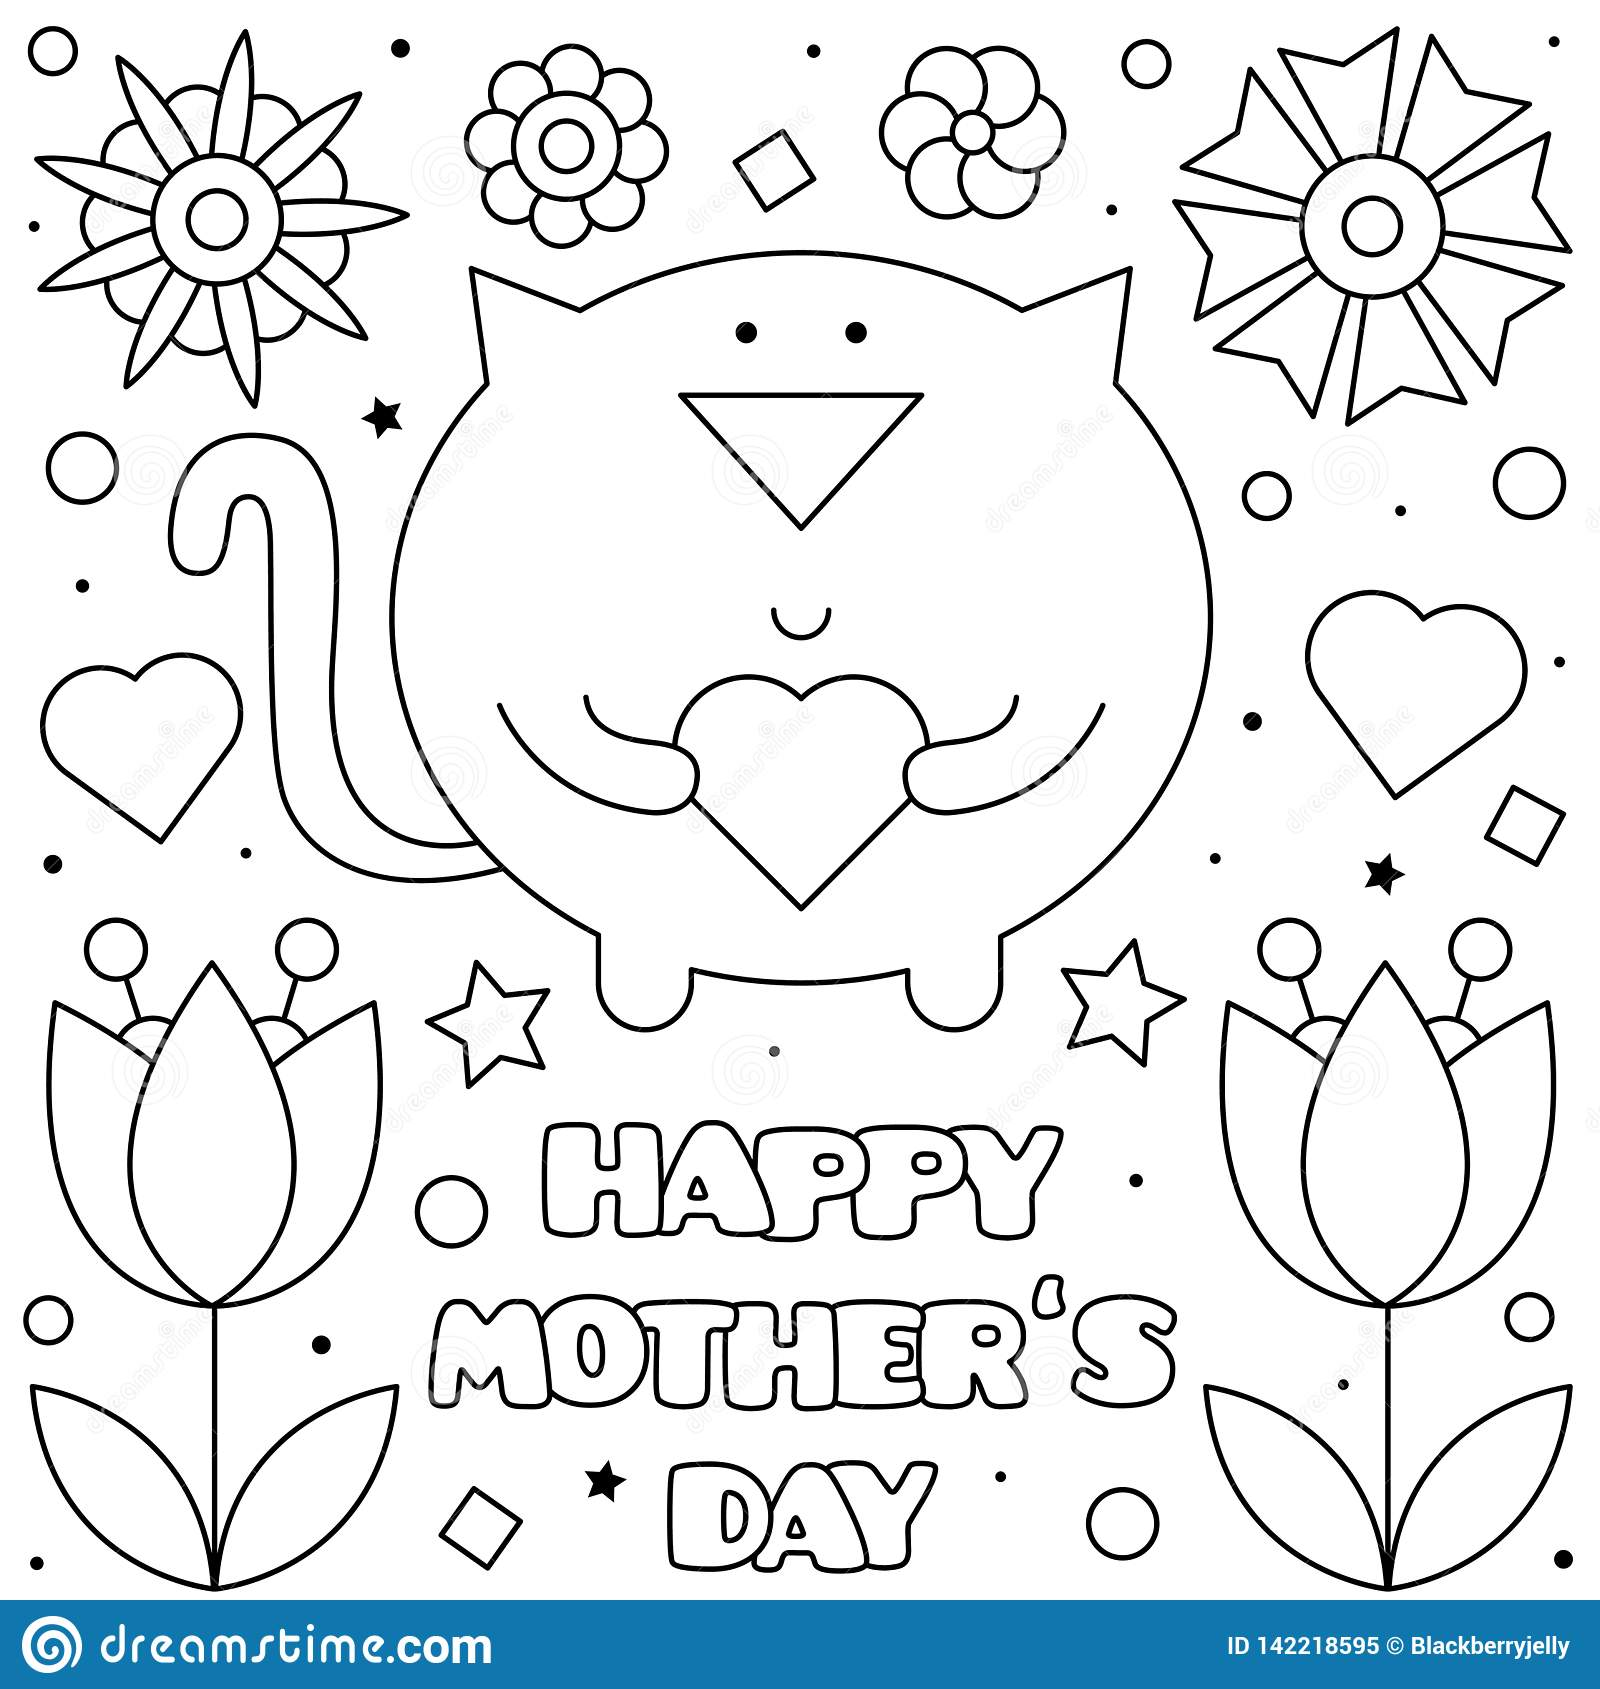 happy mothers day coloring page vector illustration cat black white